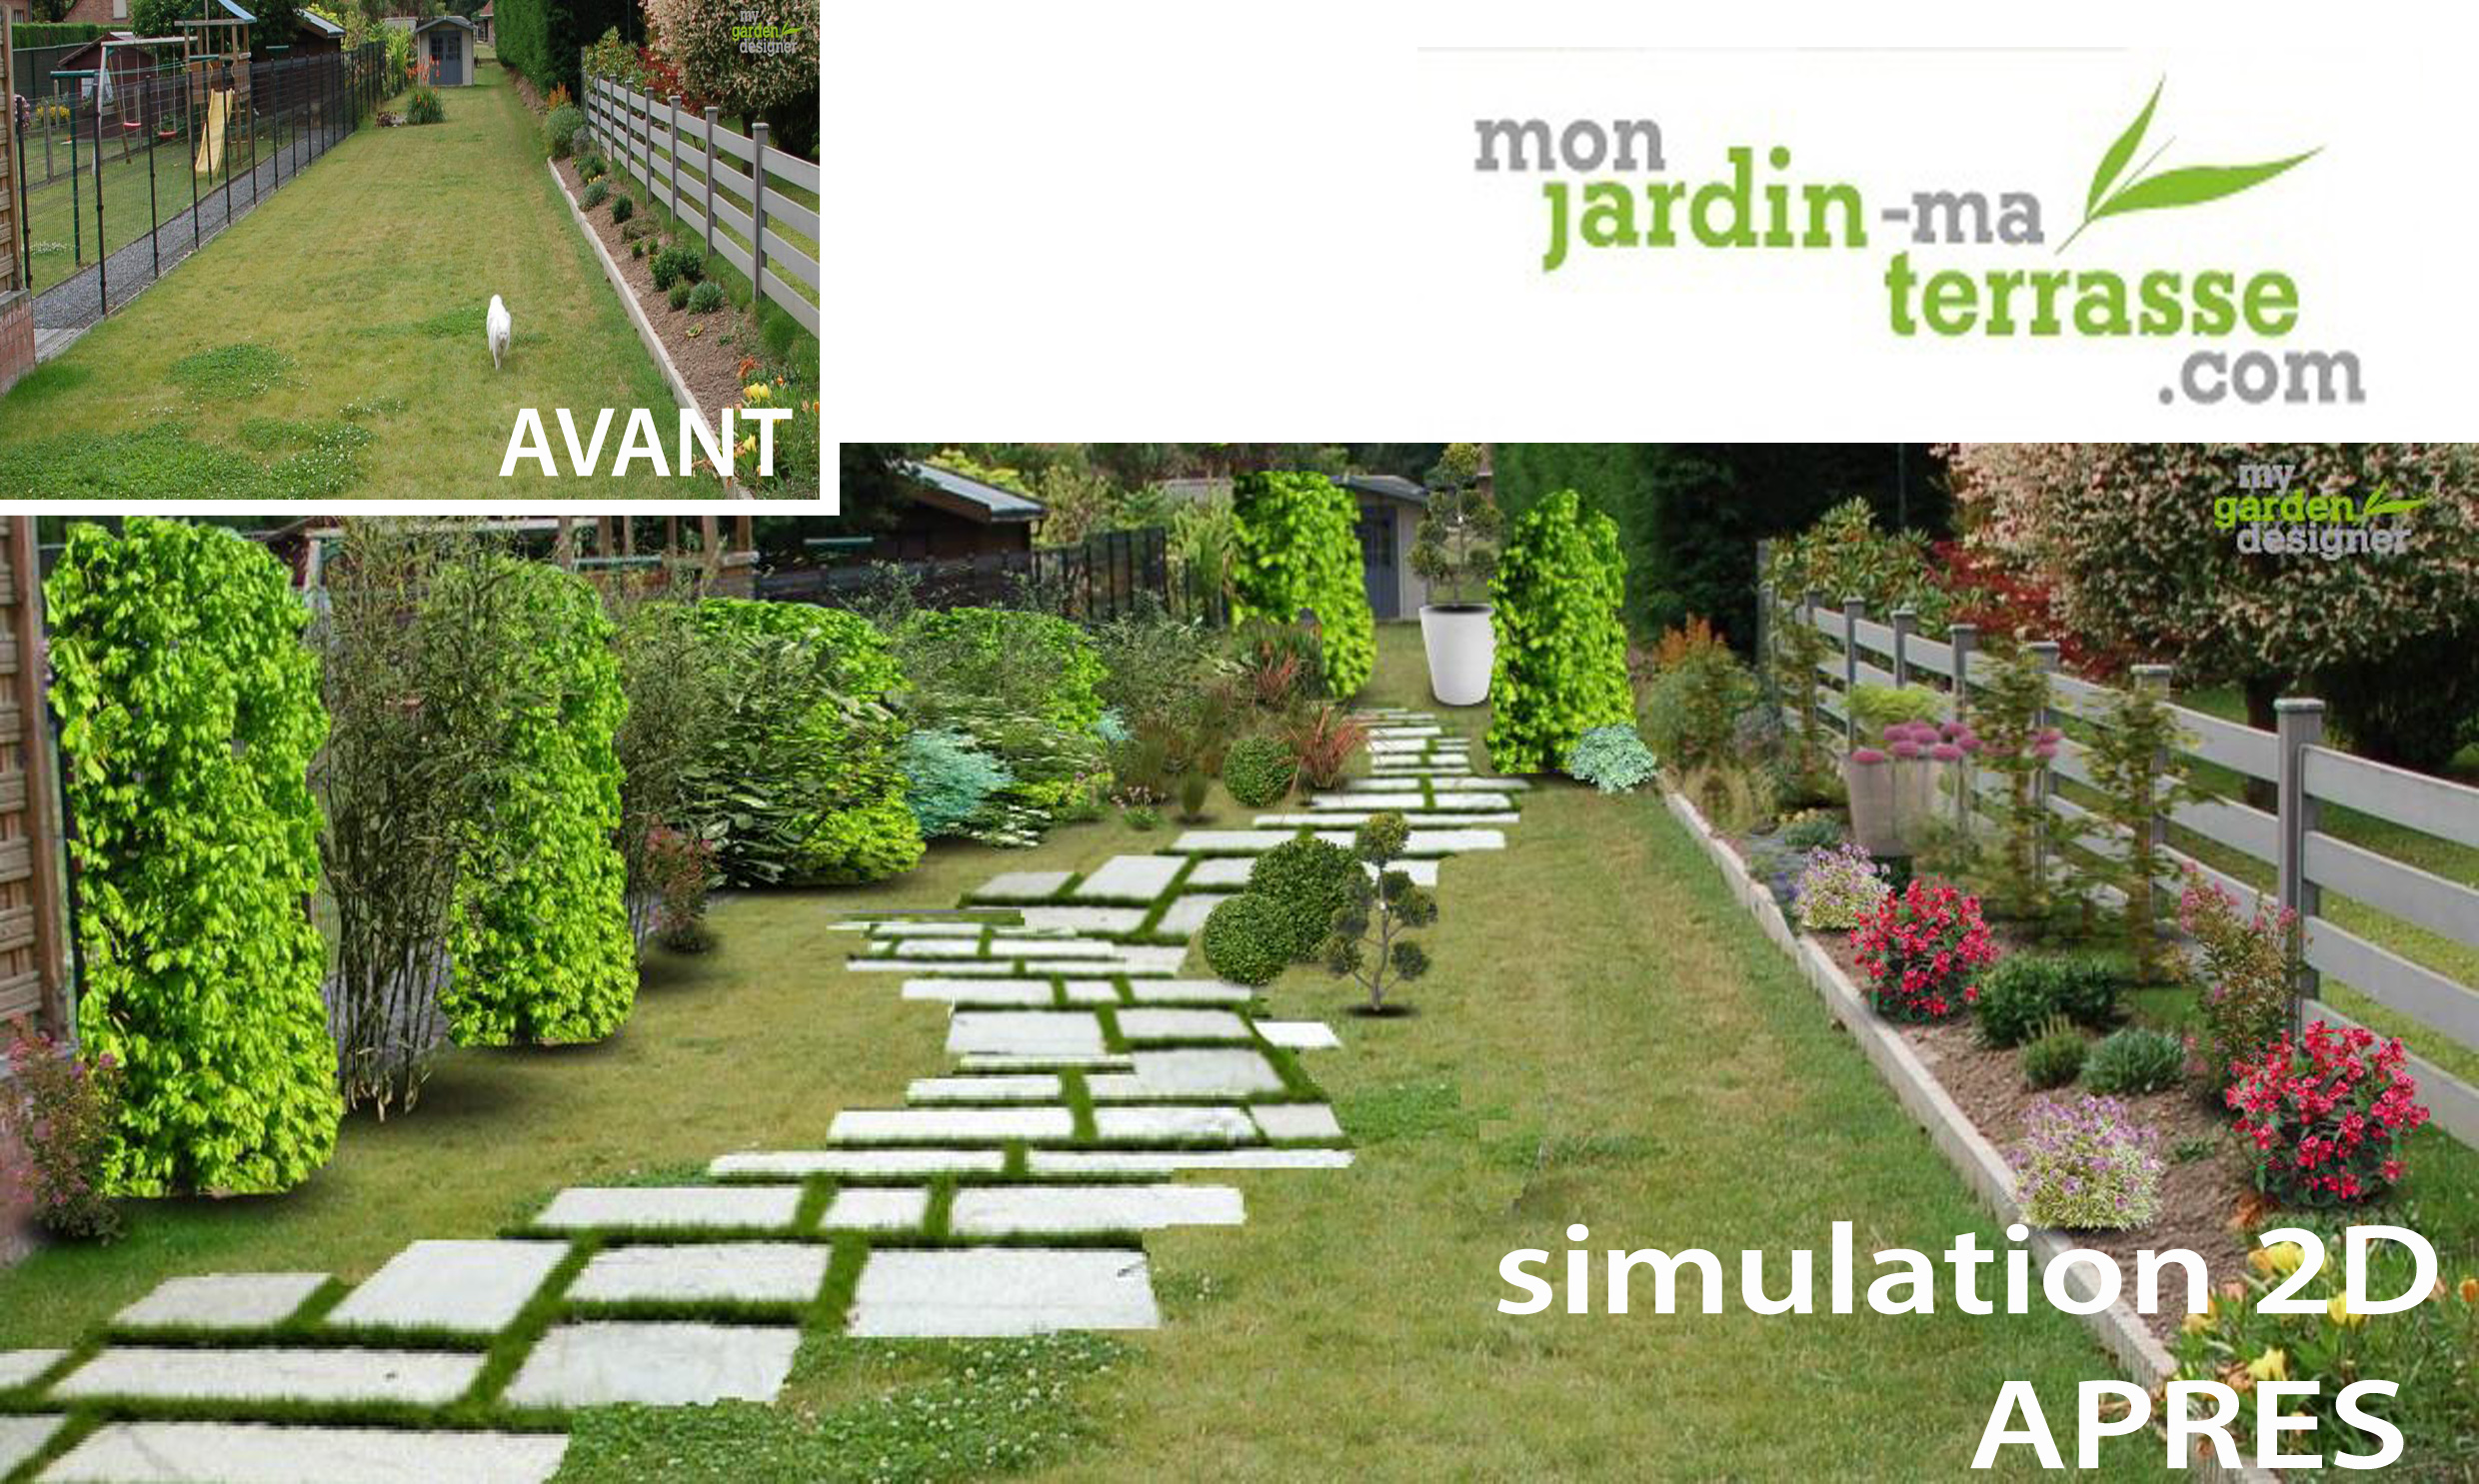 Comment am nager son jardin en longueur monjardin for Amenager sa terrasse de jardin